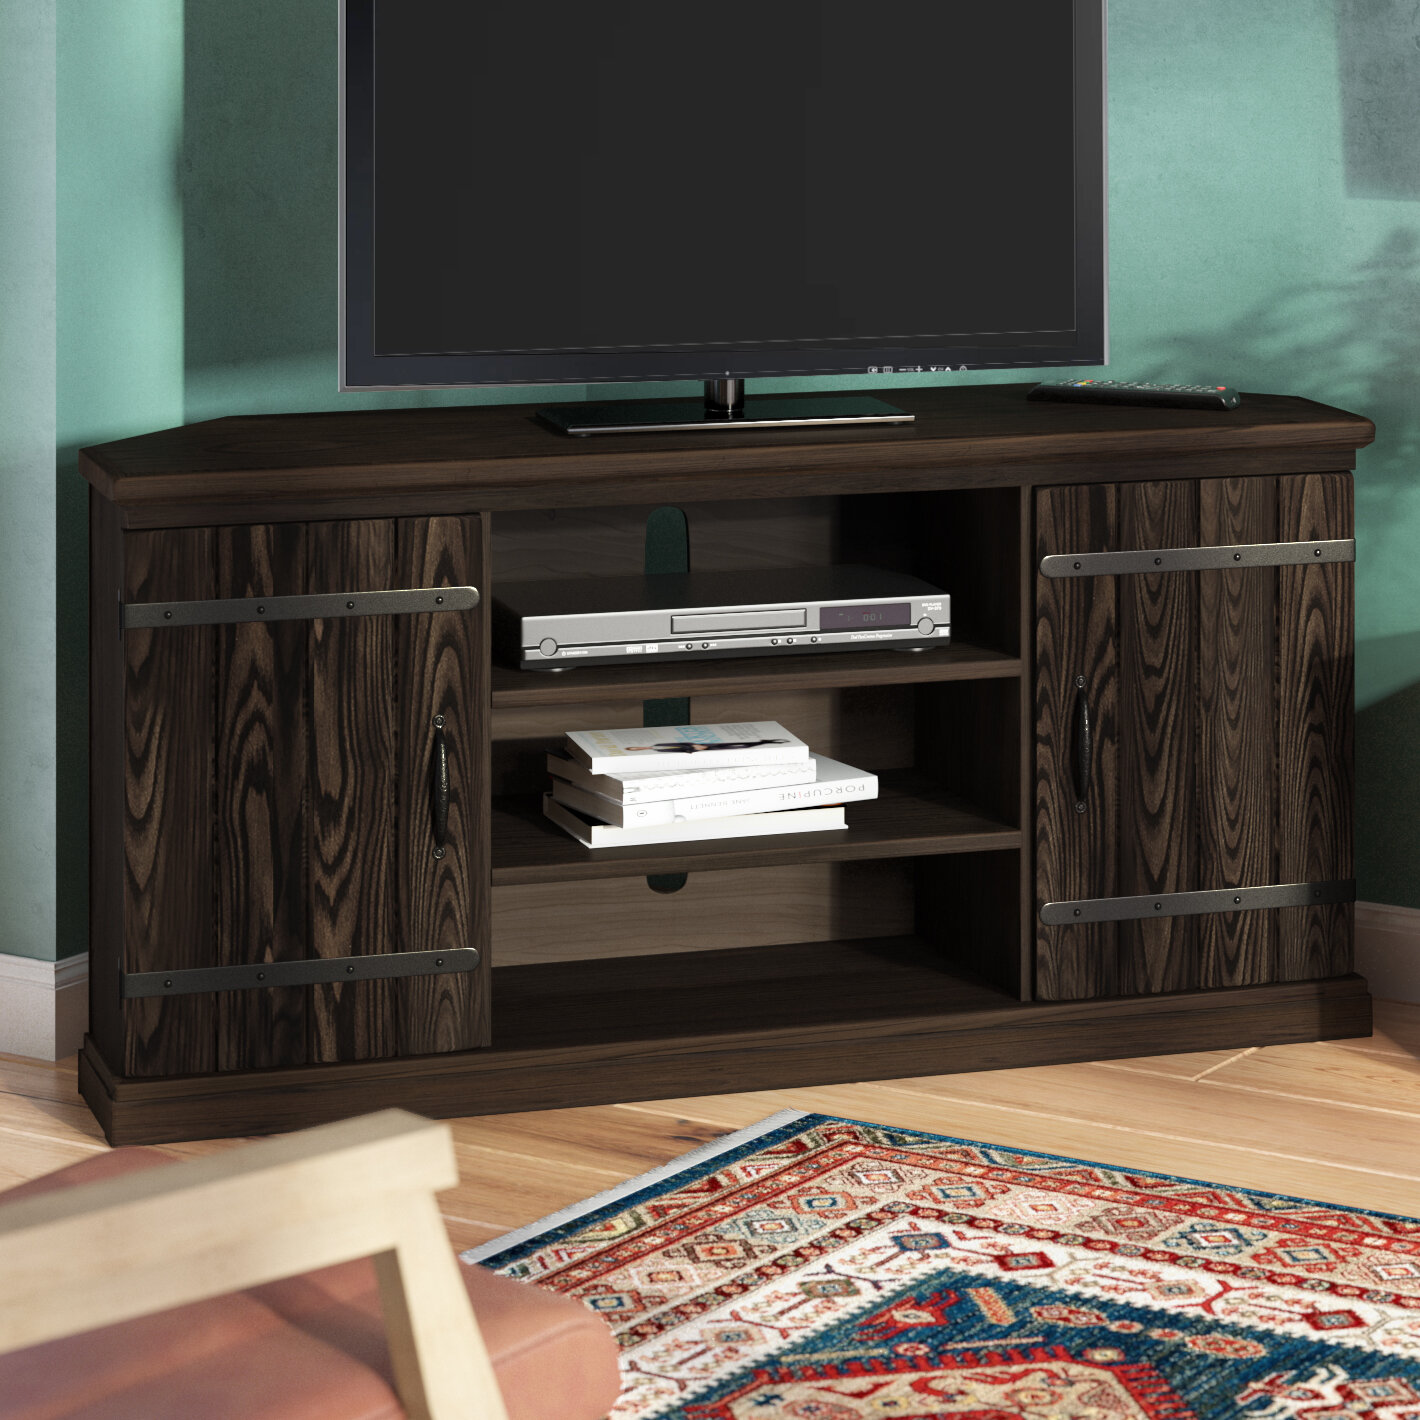 Millwood Pines Esmeyer Corner Tv Stand For Tvs Up To 60 Reviews